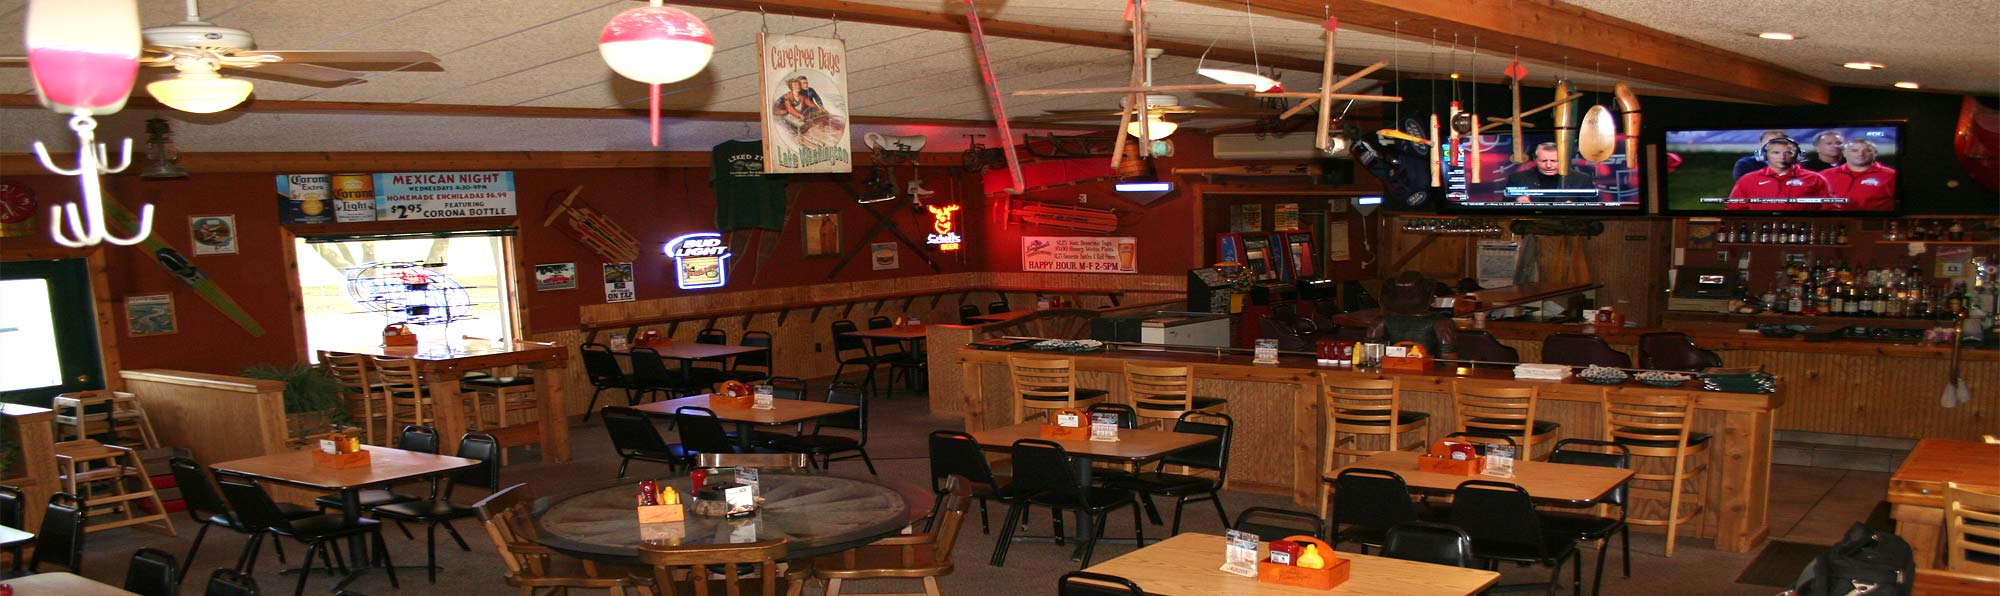 Interior of Trailblazer Bar & Grill in Madison Lake, MN